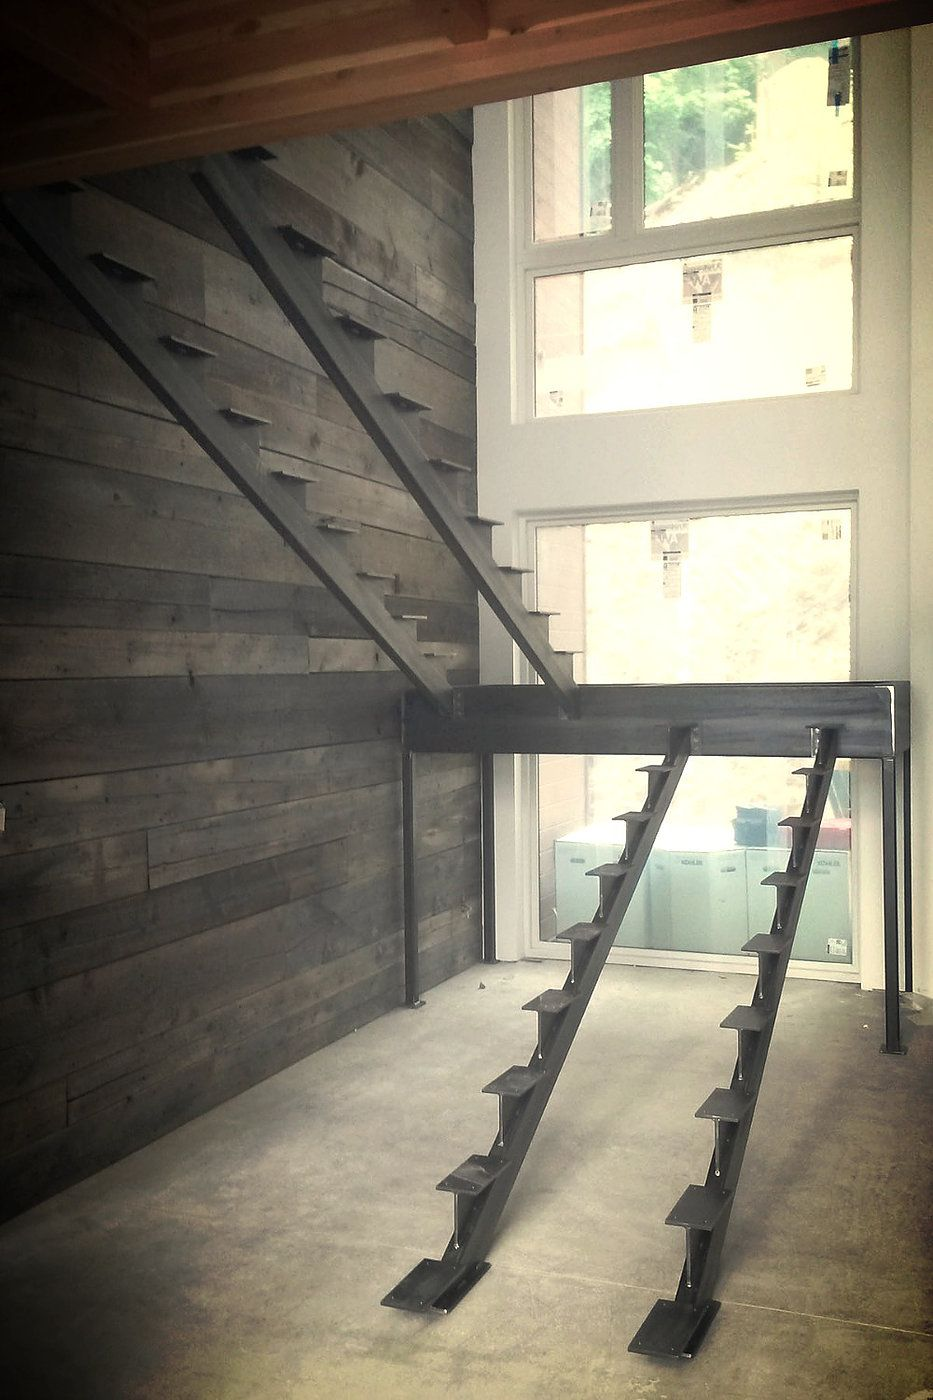 Steel stair stringers are a striking alternative